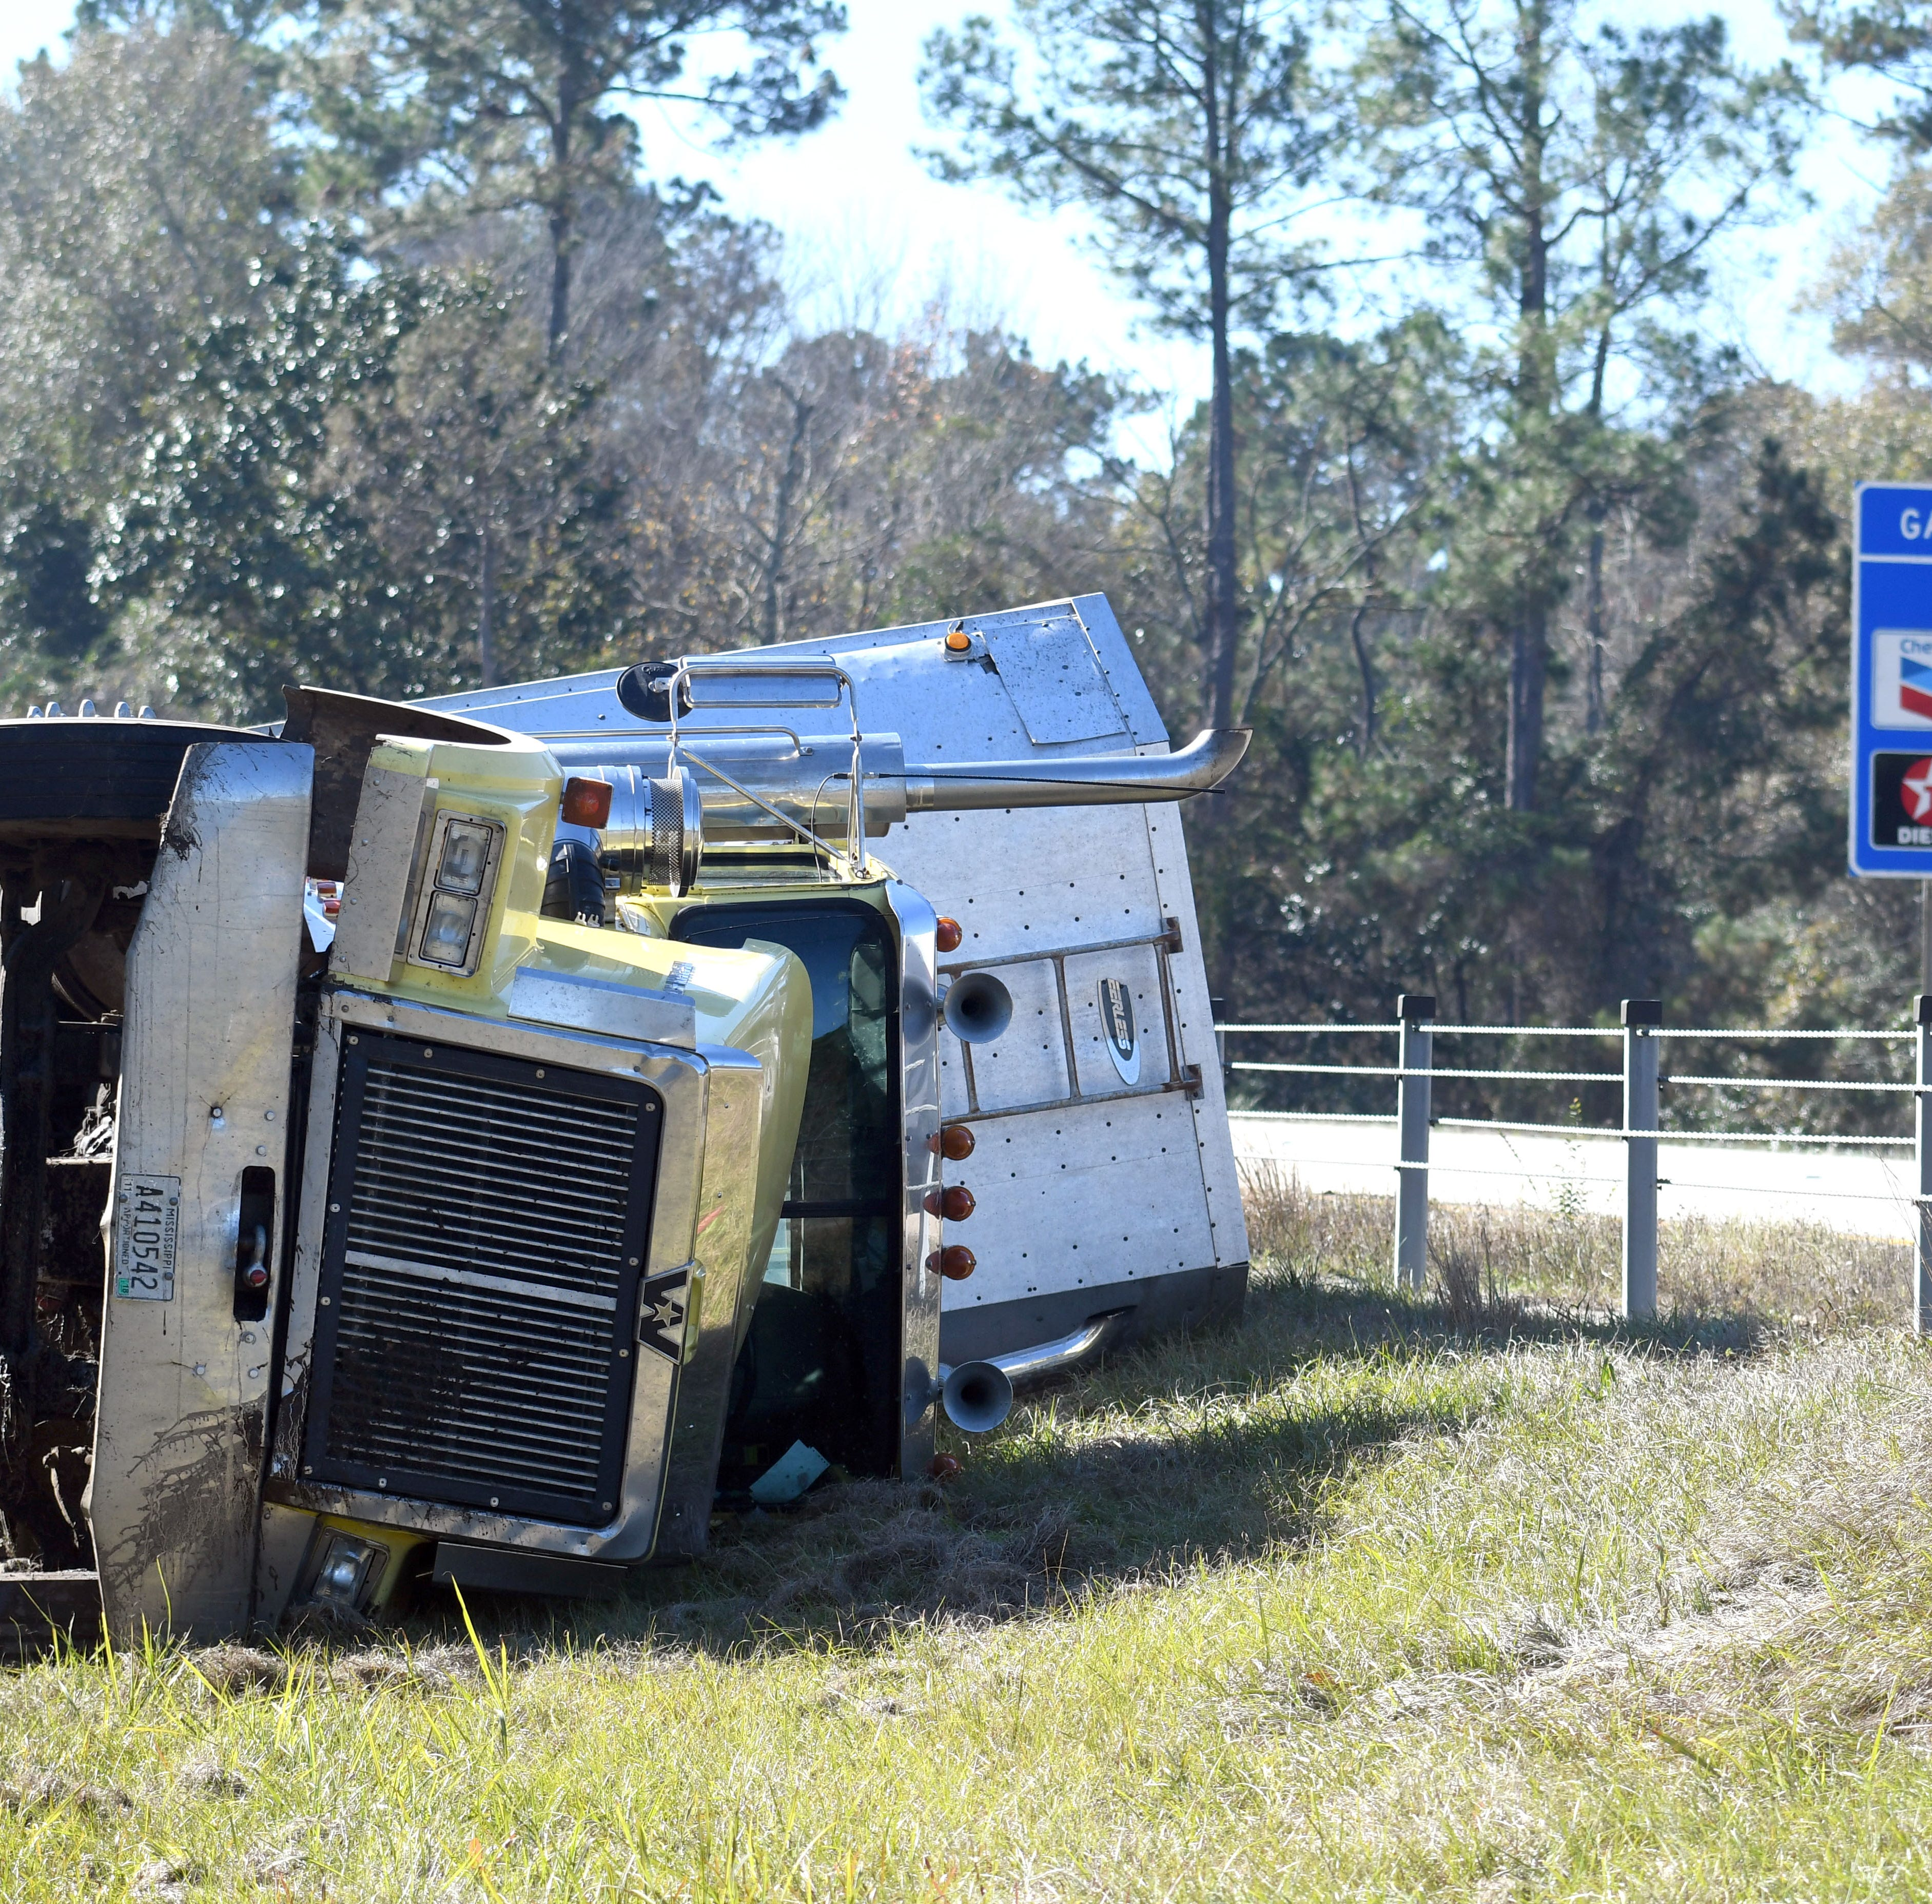 Expect traffic delays after 18-wheeler overturns in median on I-59 in Hattiesburg